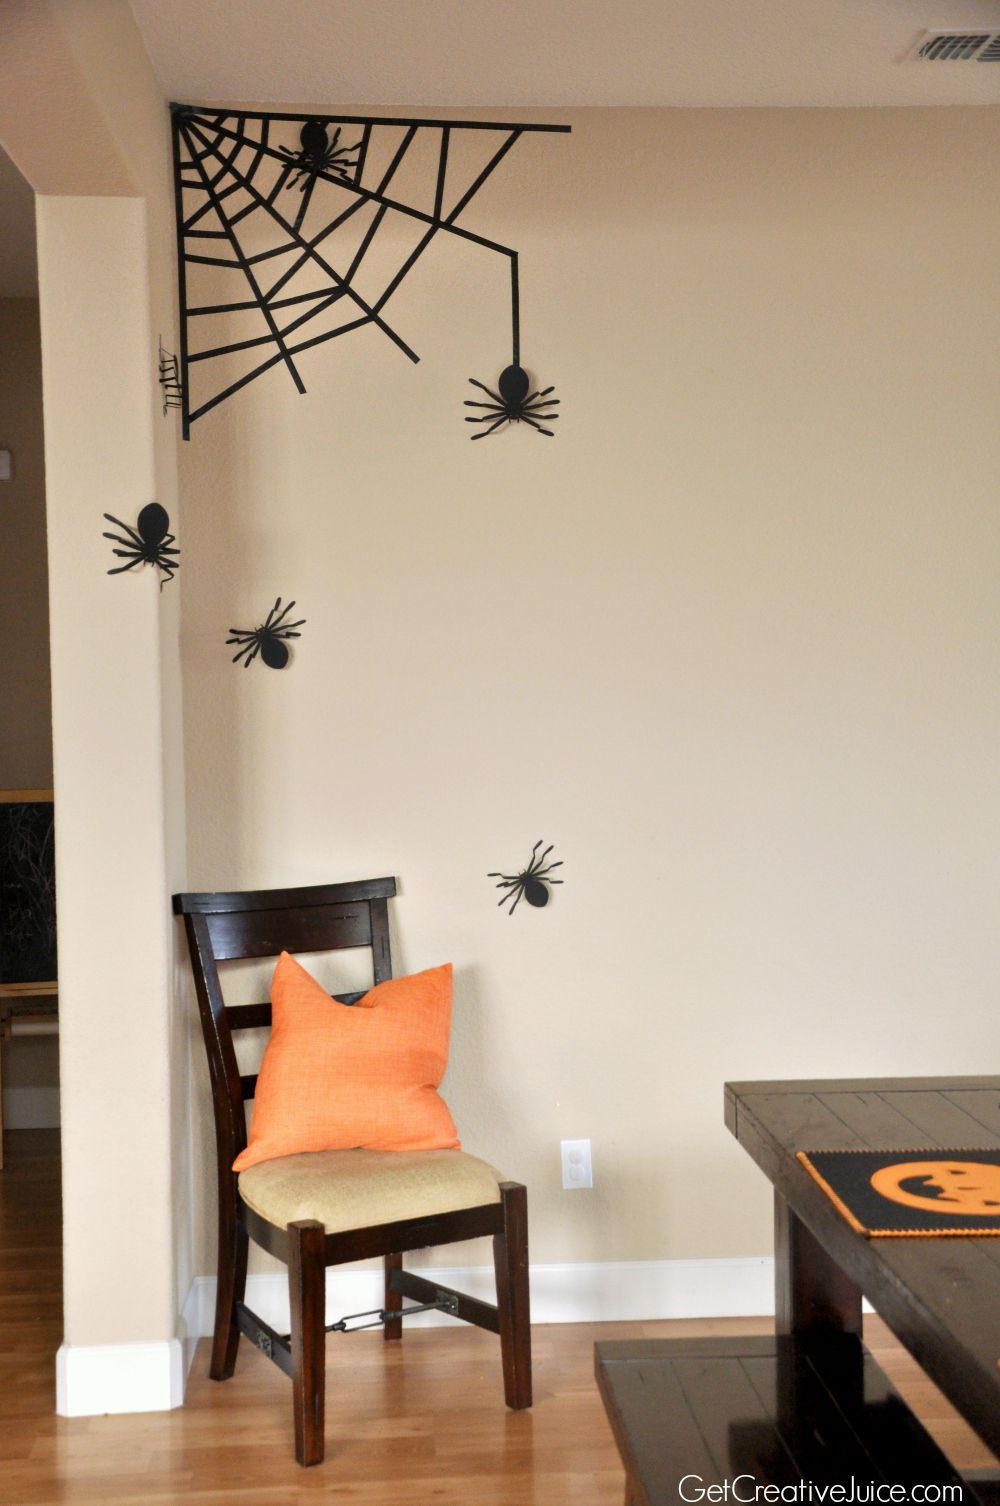 easy diy ideas for halloween decorations for your home washi tape spider web paper spiders easy tabletop decor halloween place settings - Cheap Diy Halloween Decorations